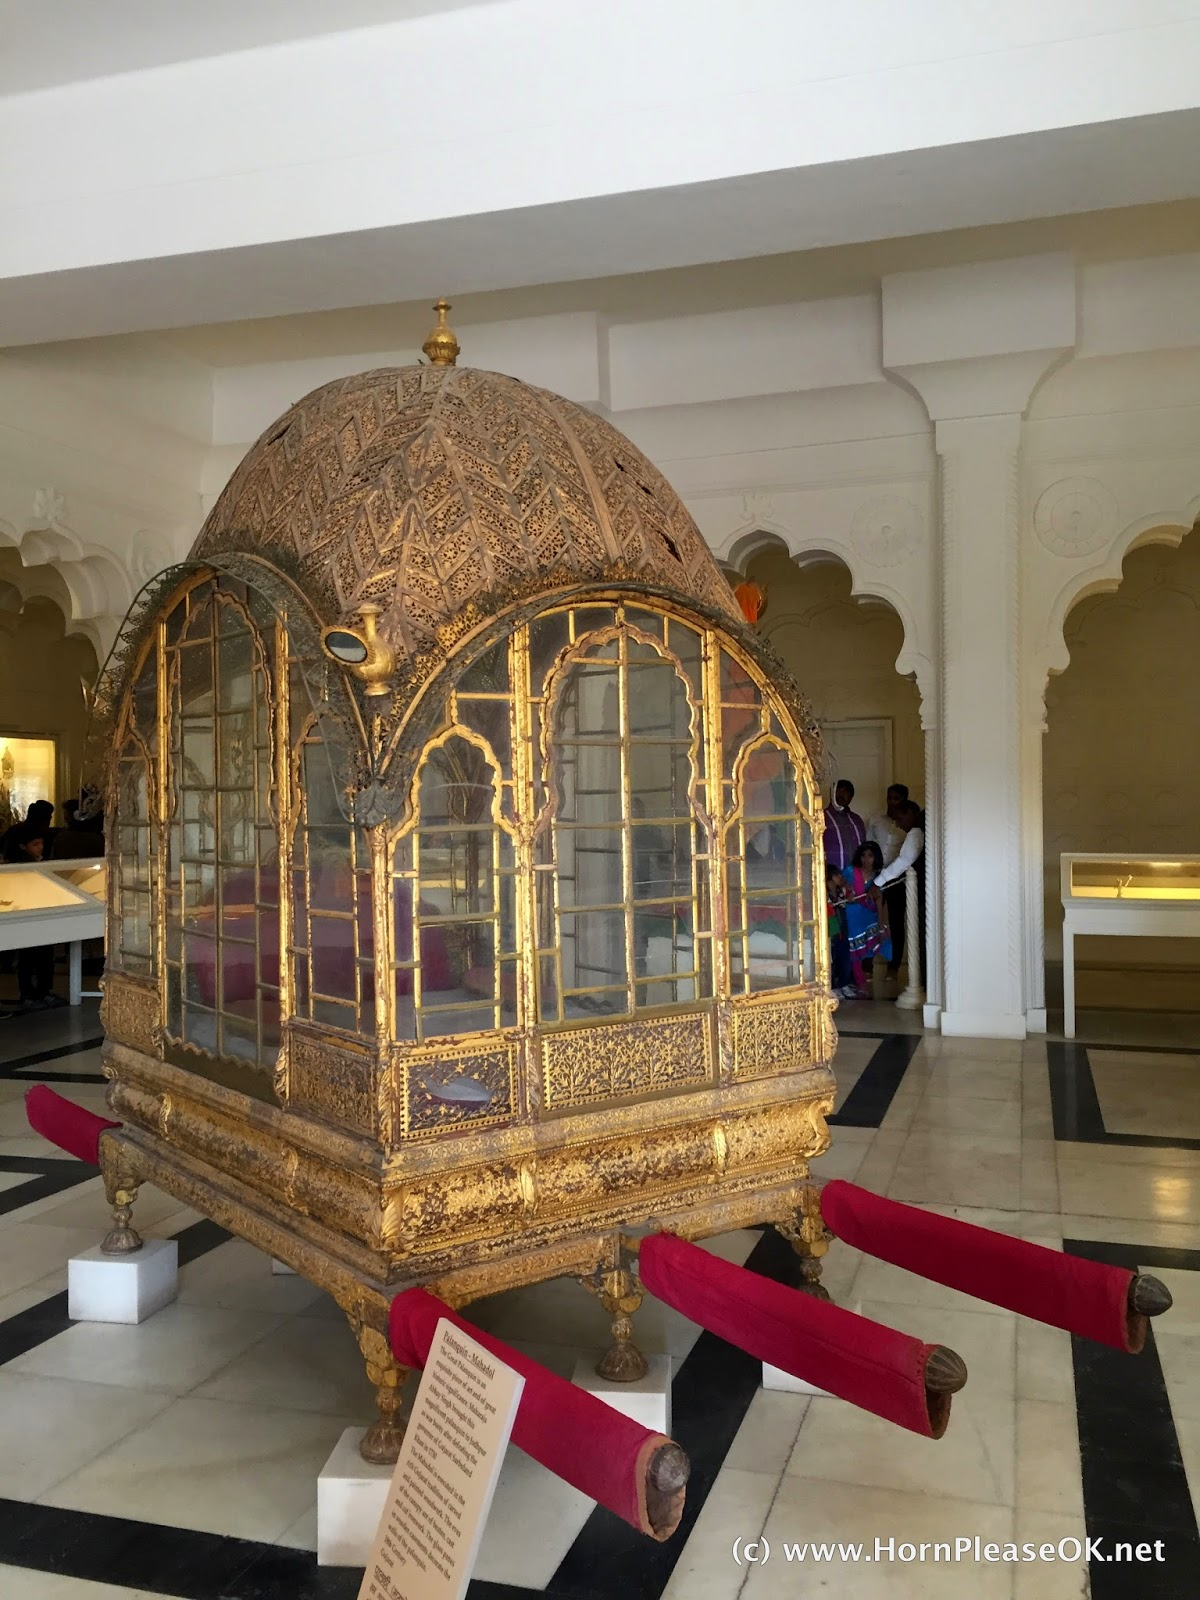 A gold palanquin belonging to the Marwar royal family